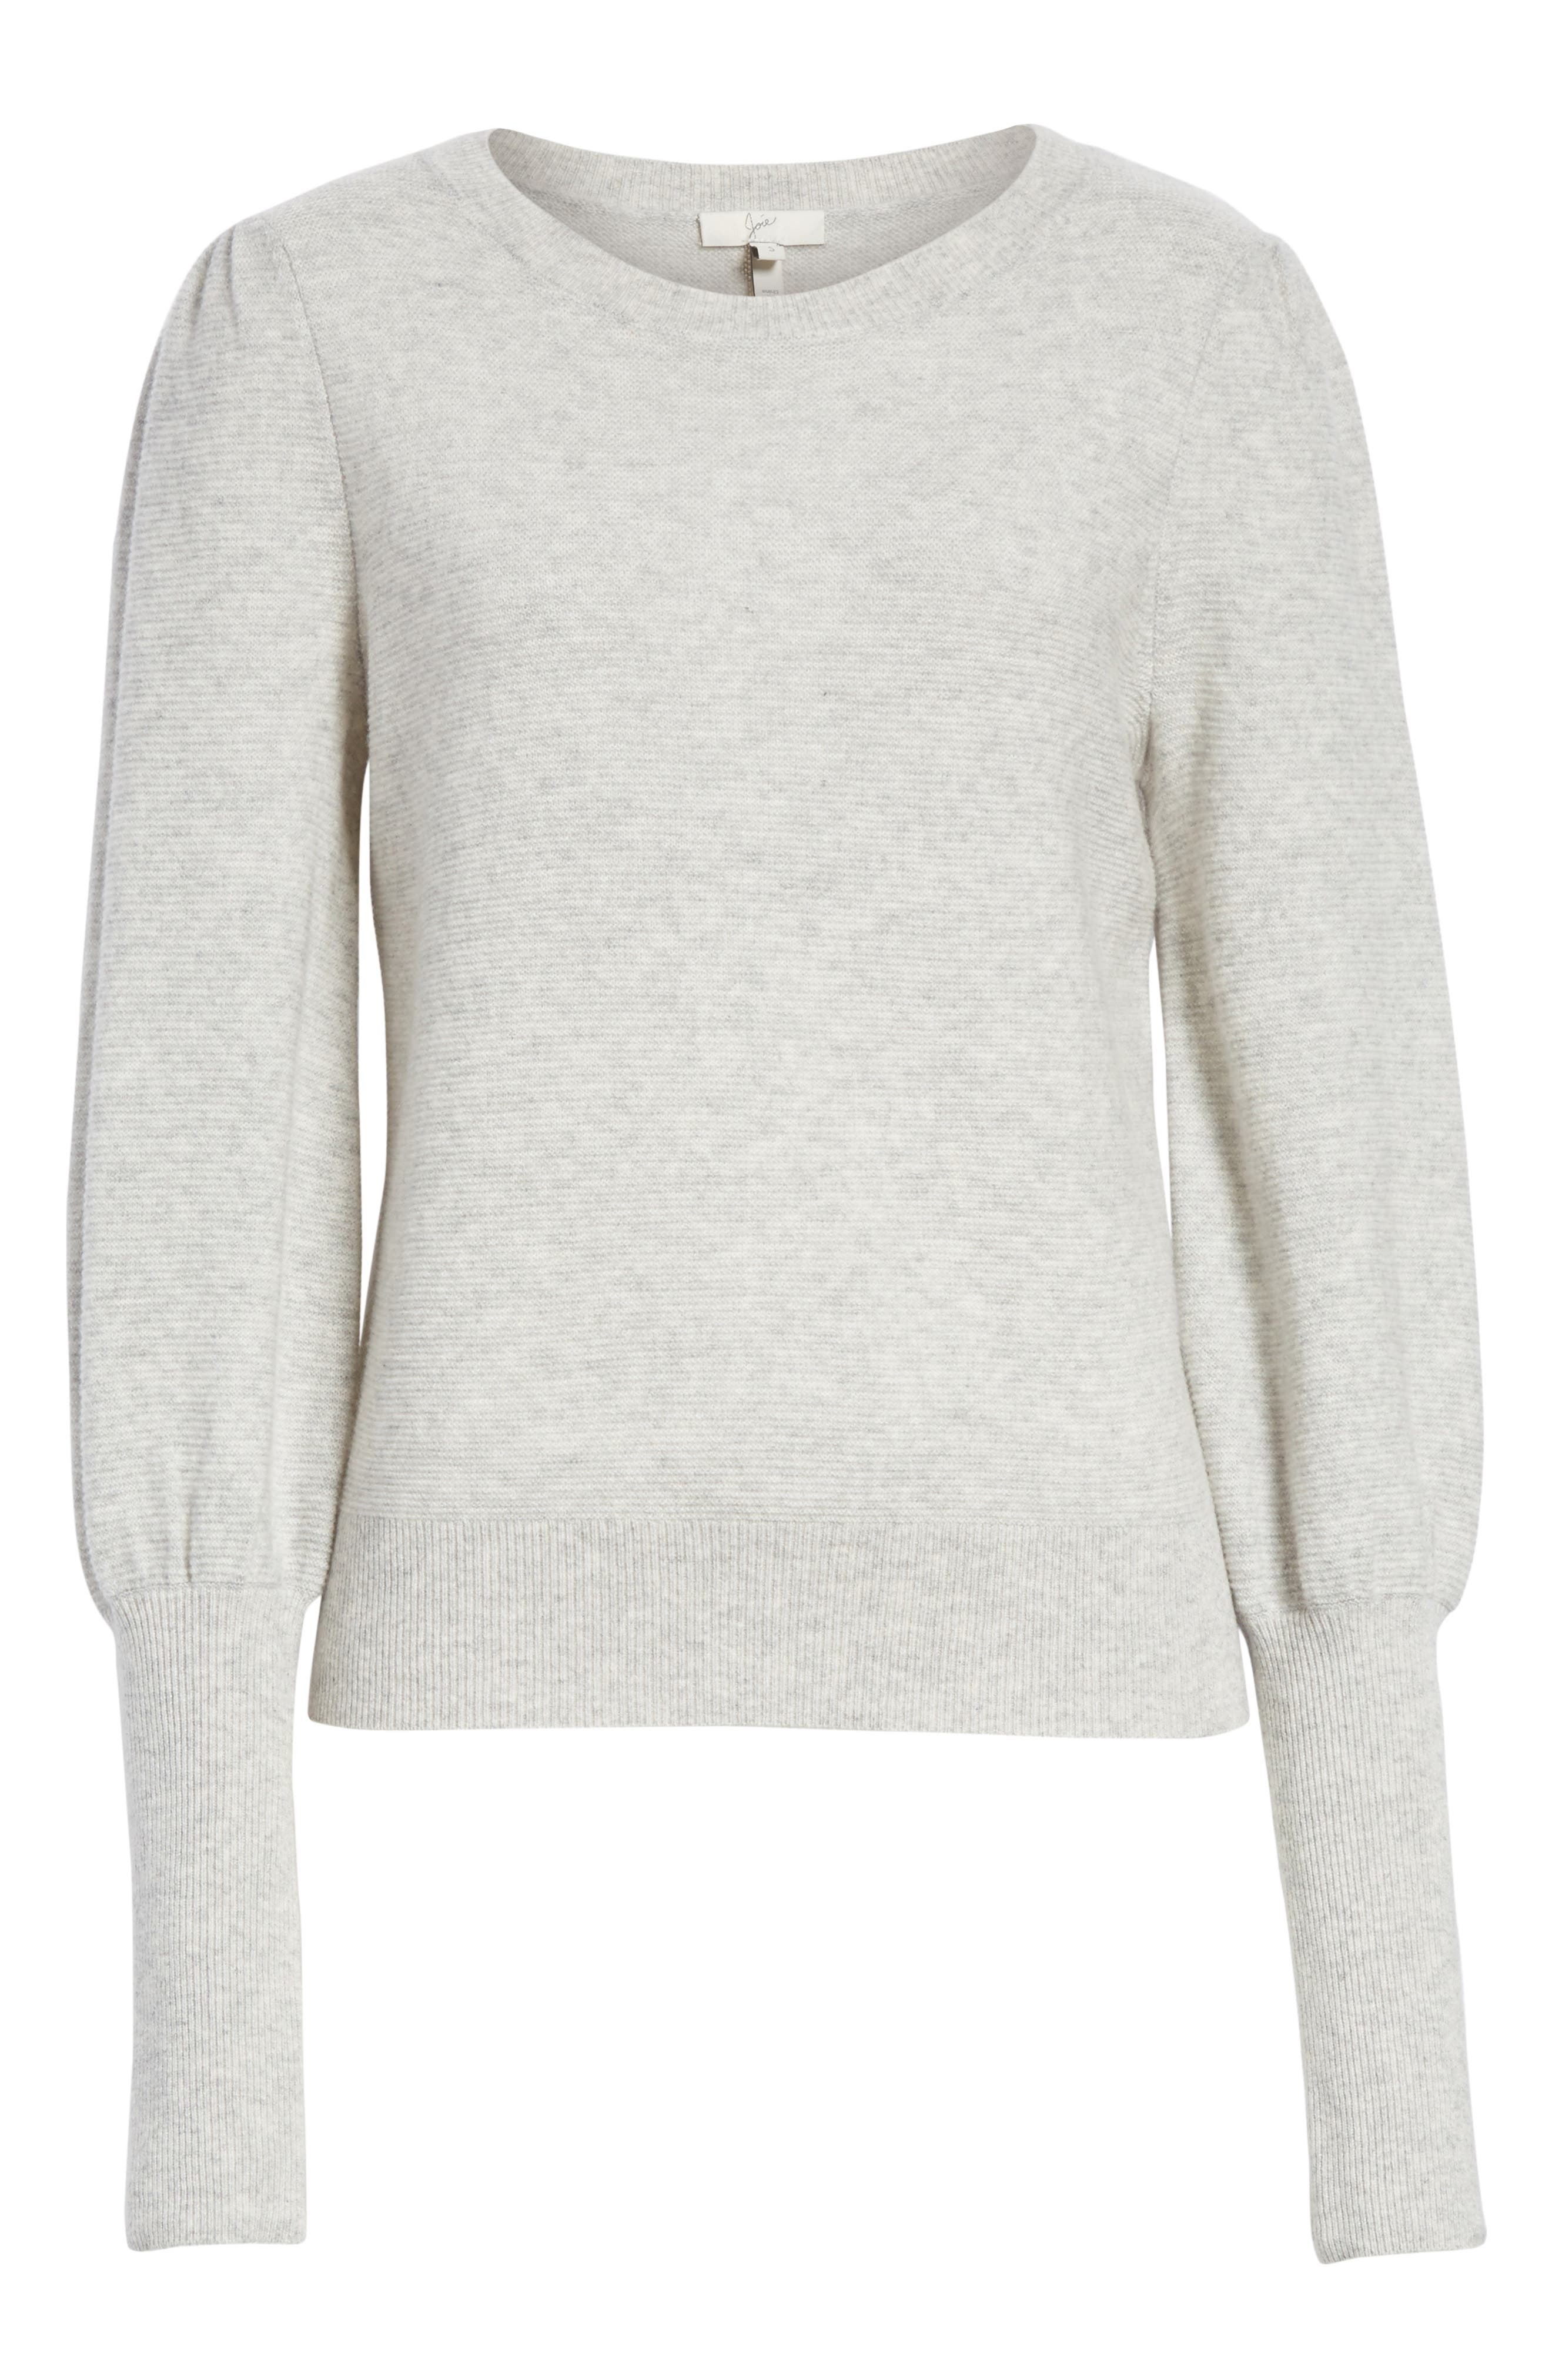 Noely Wool and Cashmere Sweater,                             Alternate thumbnail 11, color,